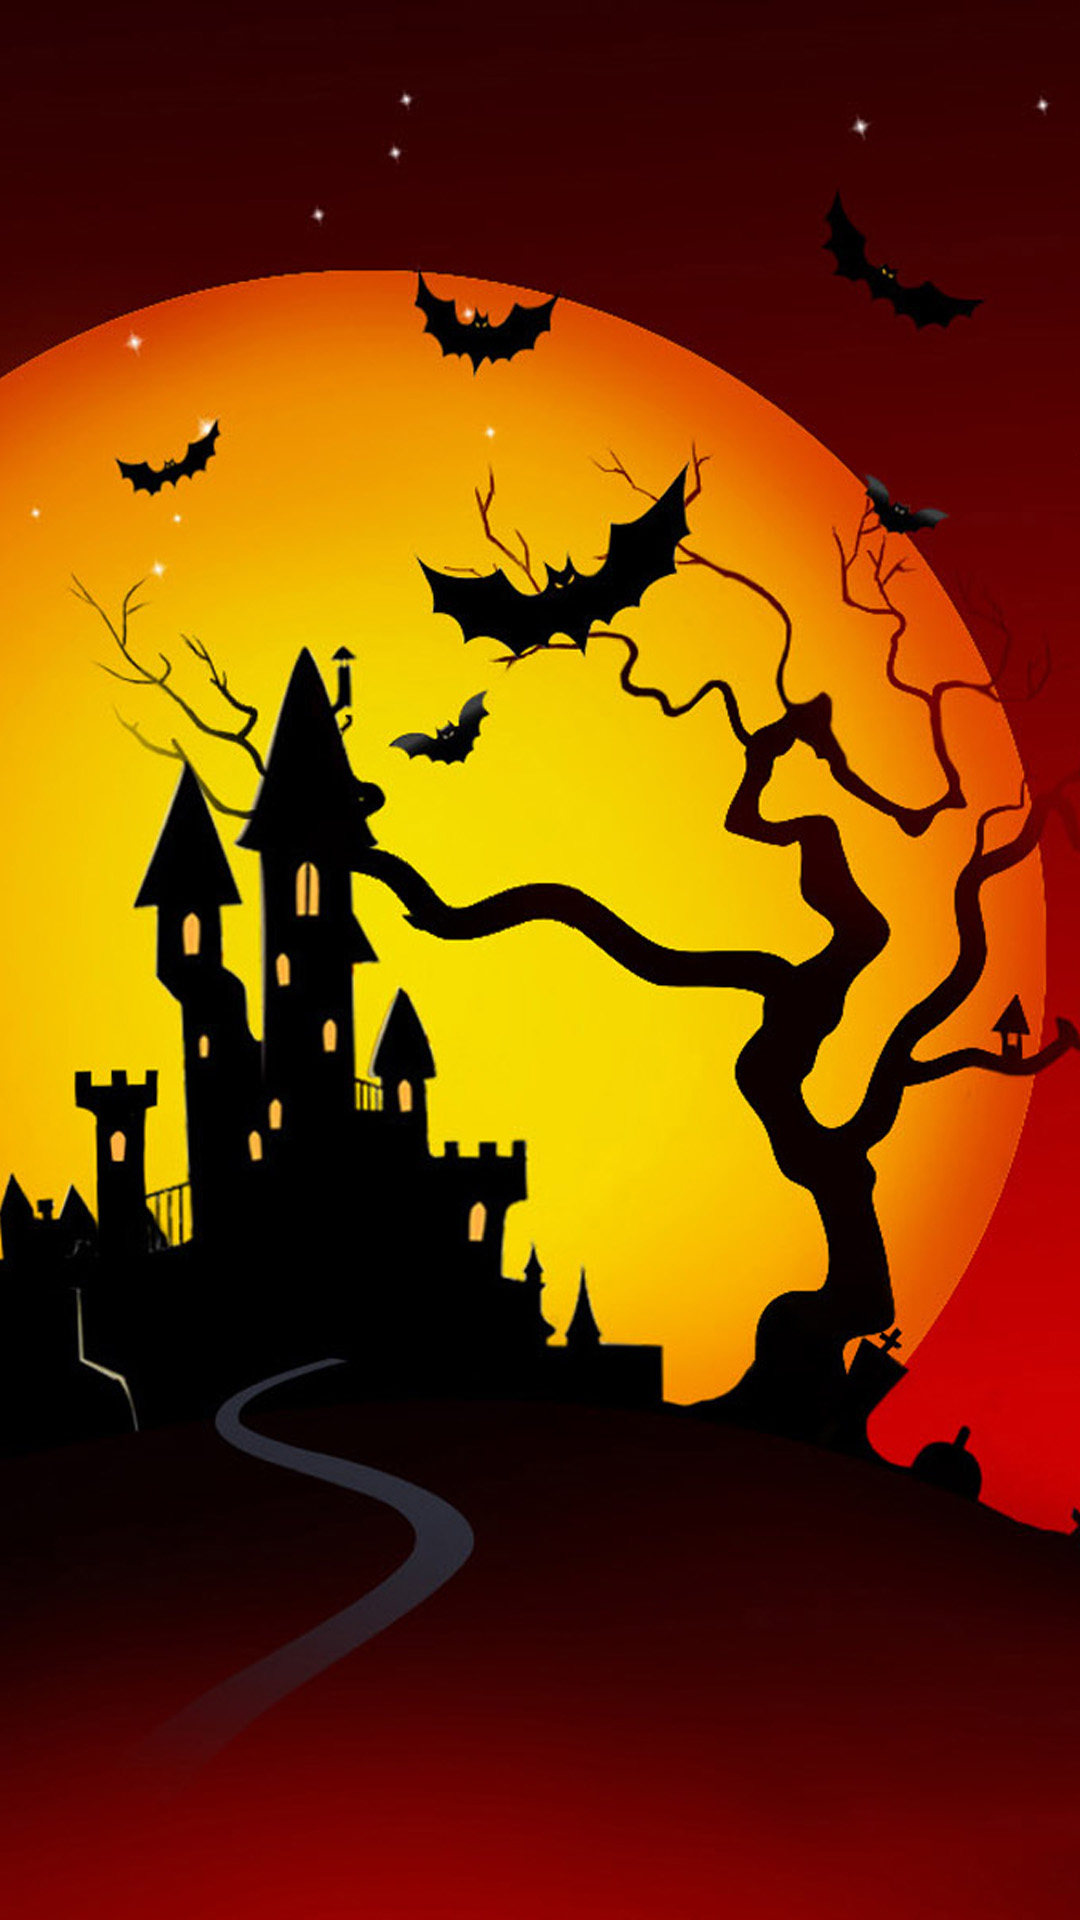 Halloween Wallpaper for iPhone 6 - WallpaperSafari